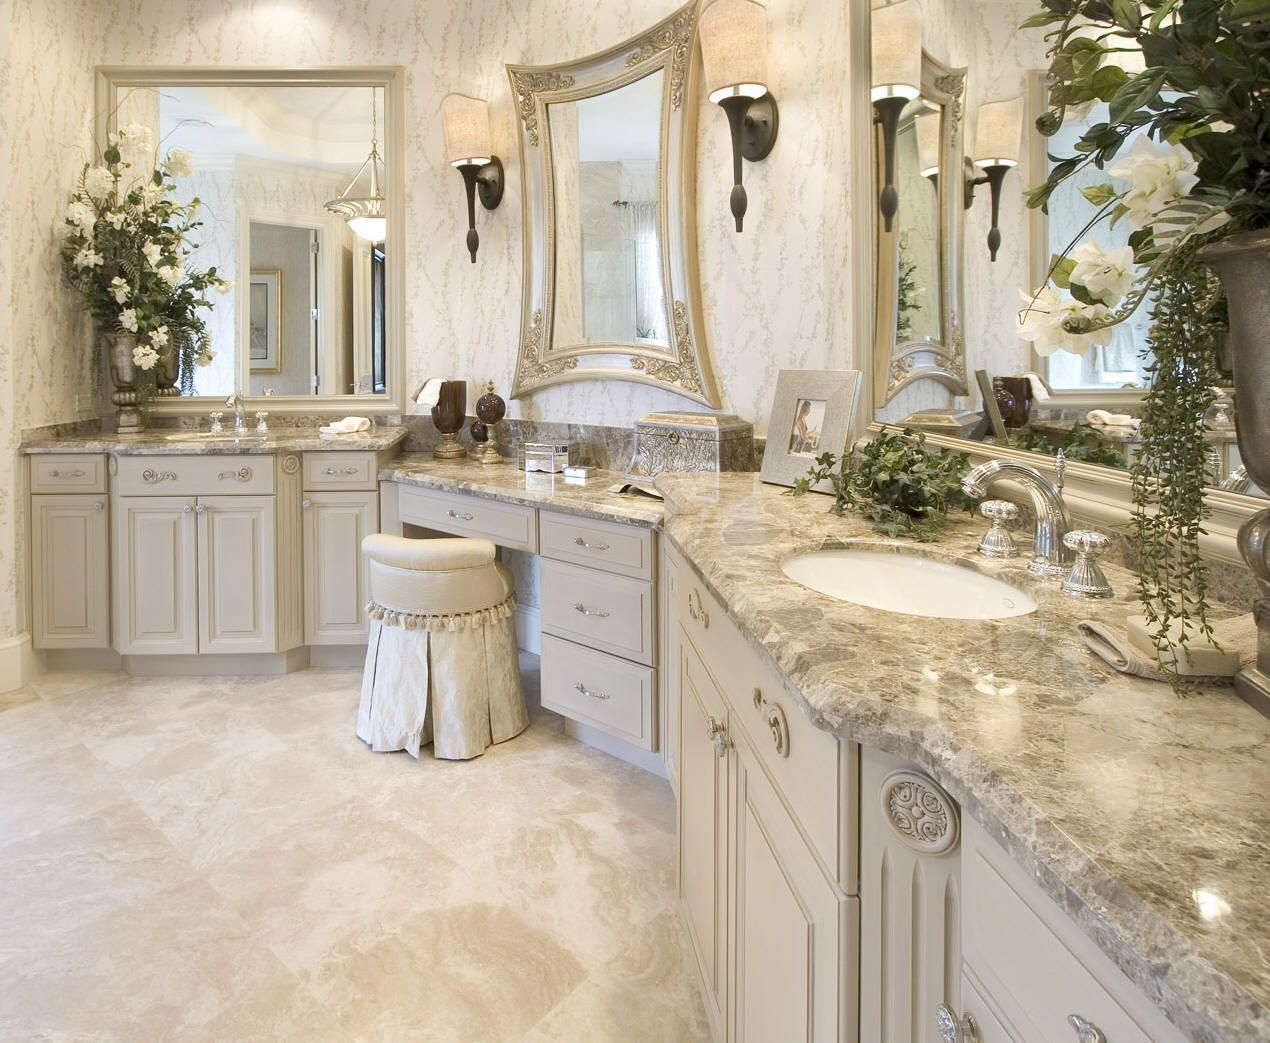 One Sink Two Faucets Vanity